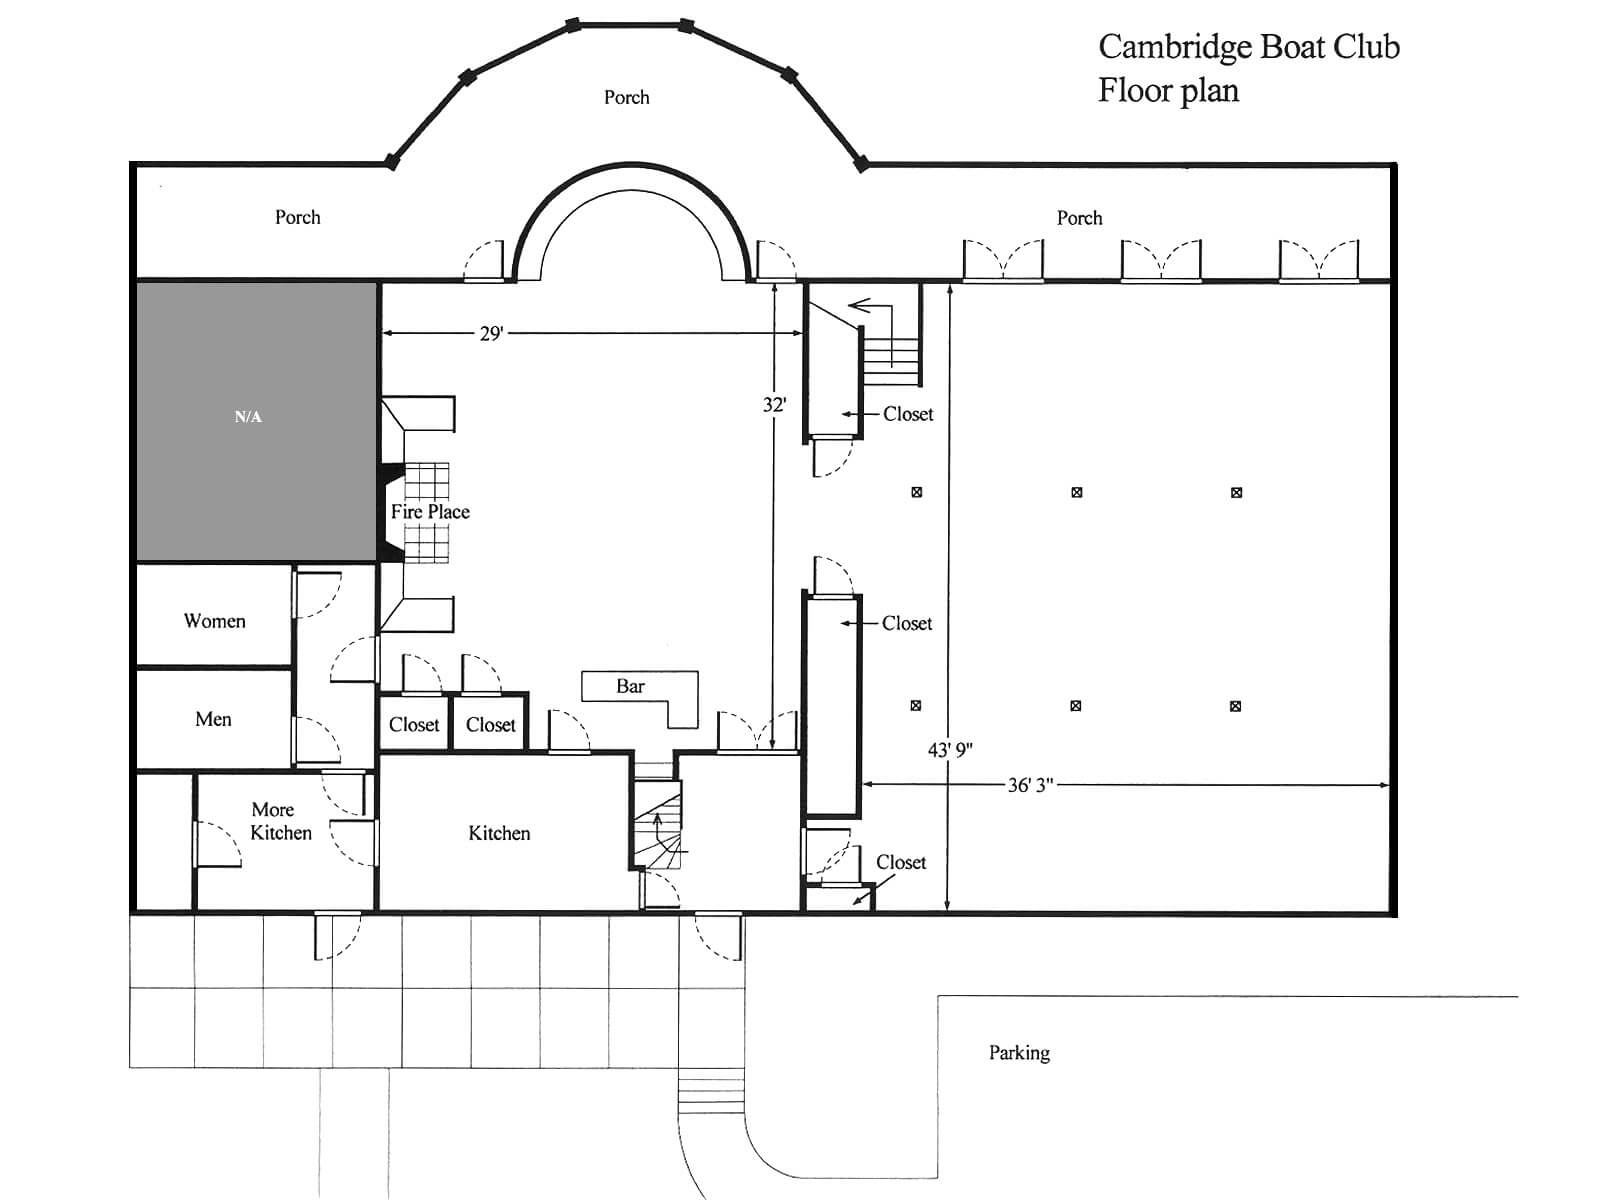 Floor plan of the cambridge boat club cambridge boat club for Floor plans